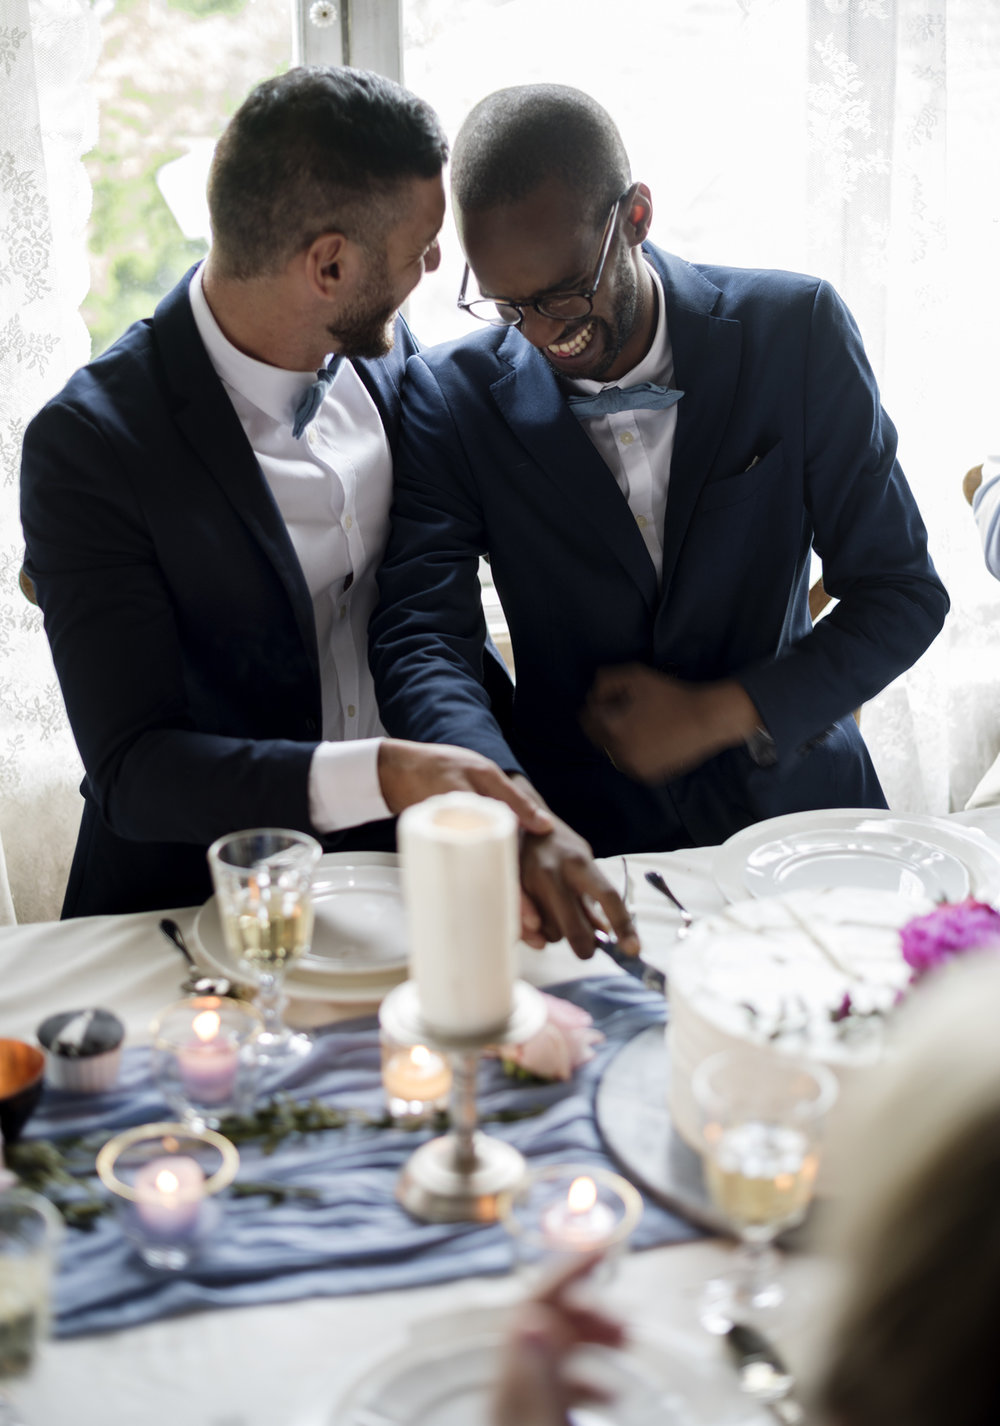 gay-wedding-speeches-groom-and-groom-at-the-wedding-dinner.jpg